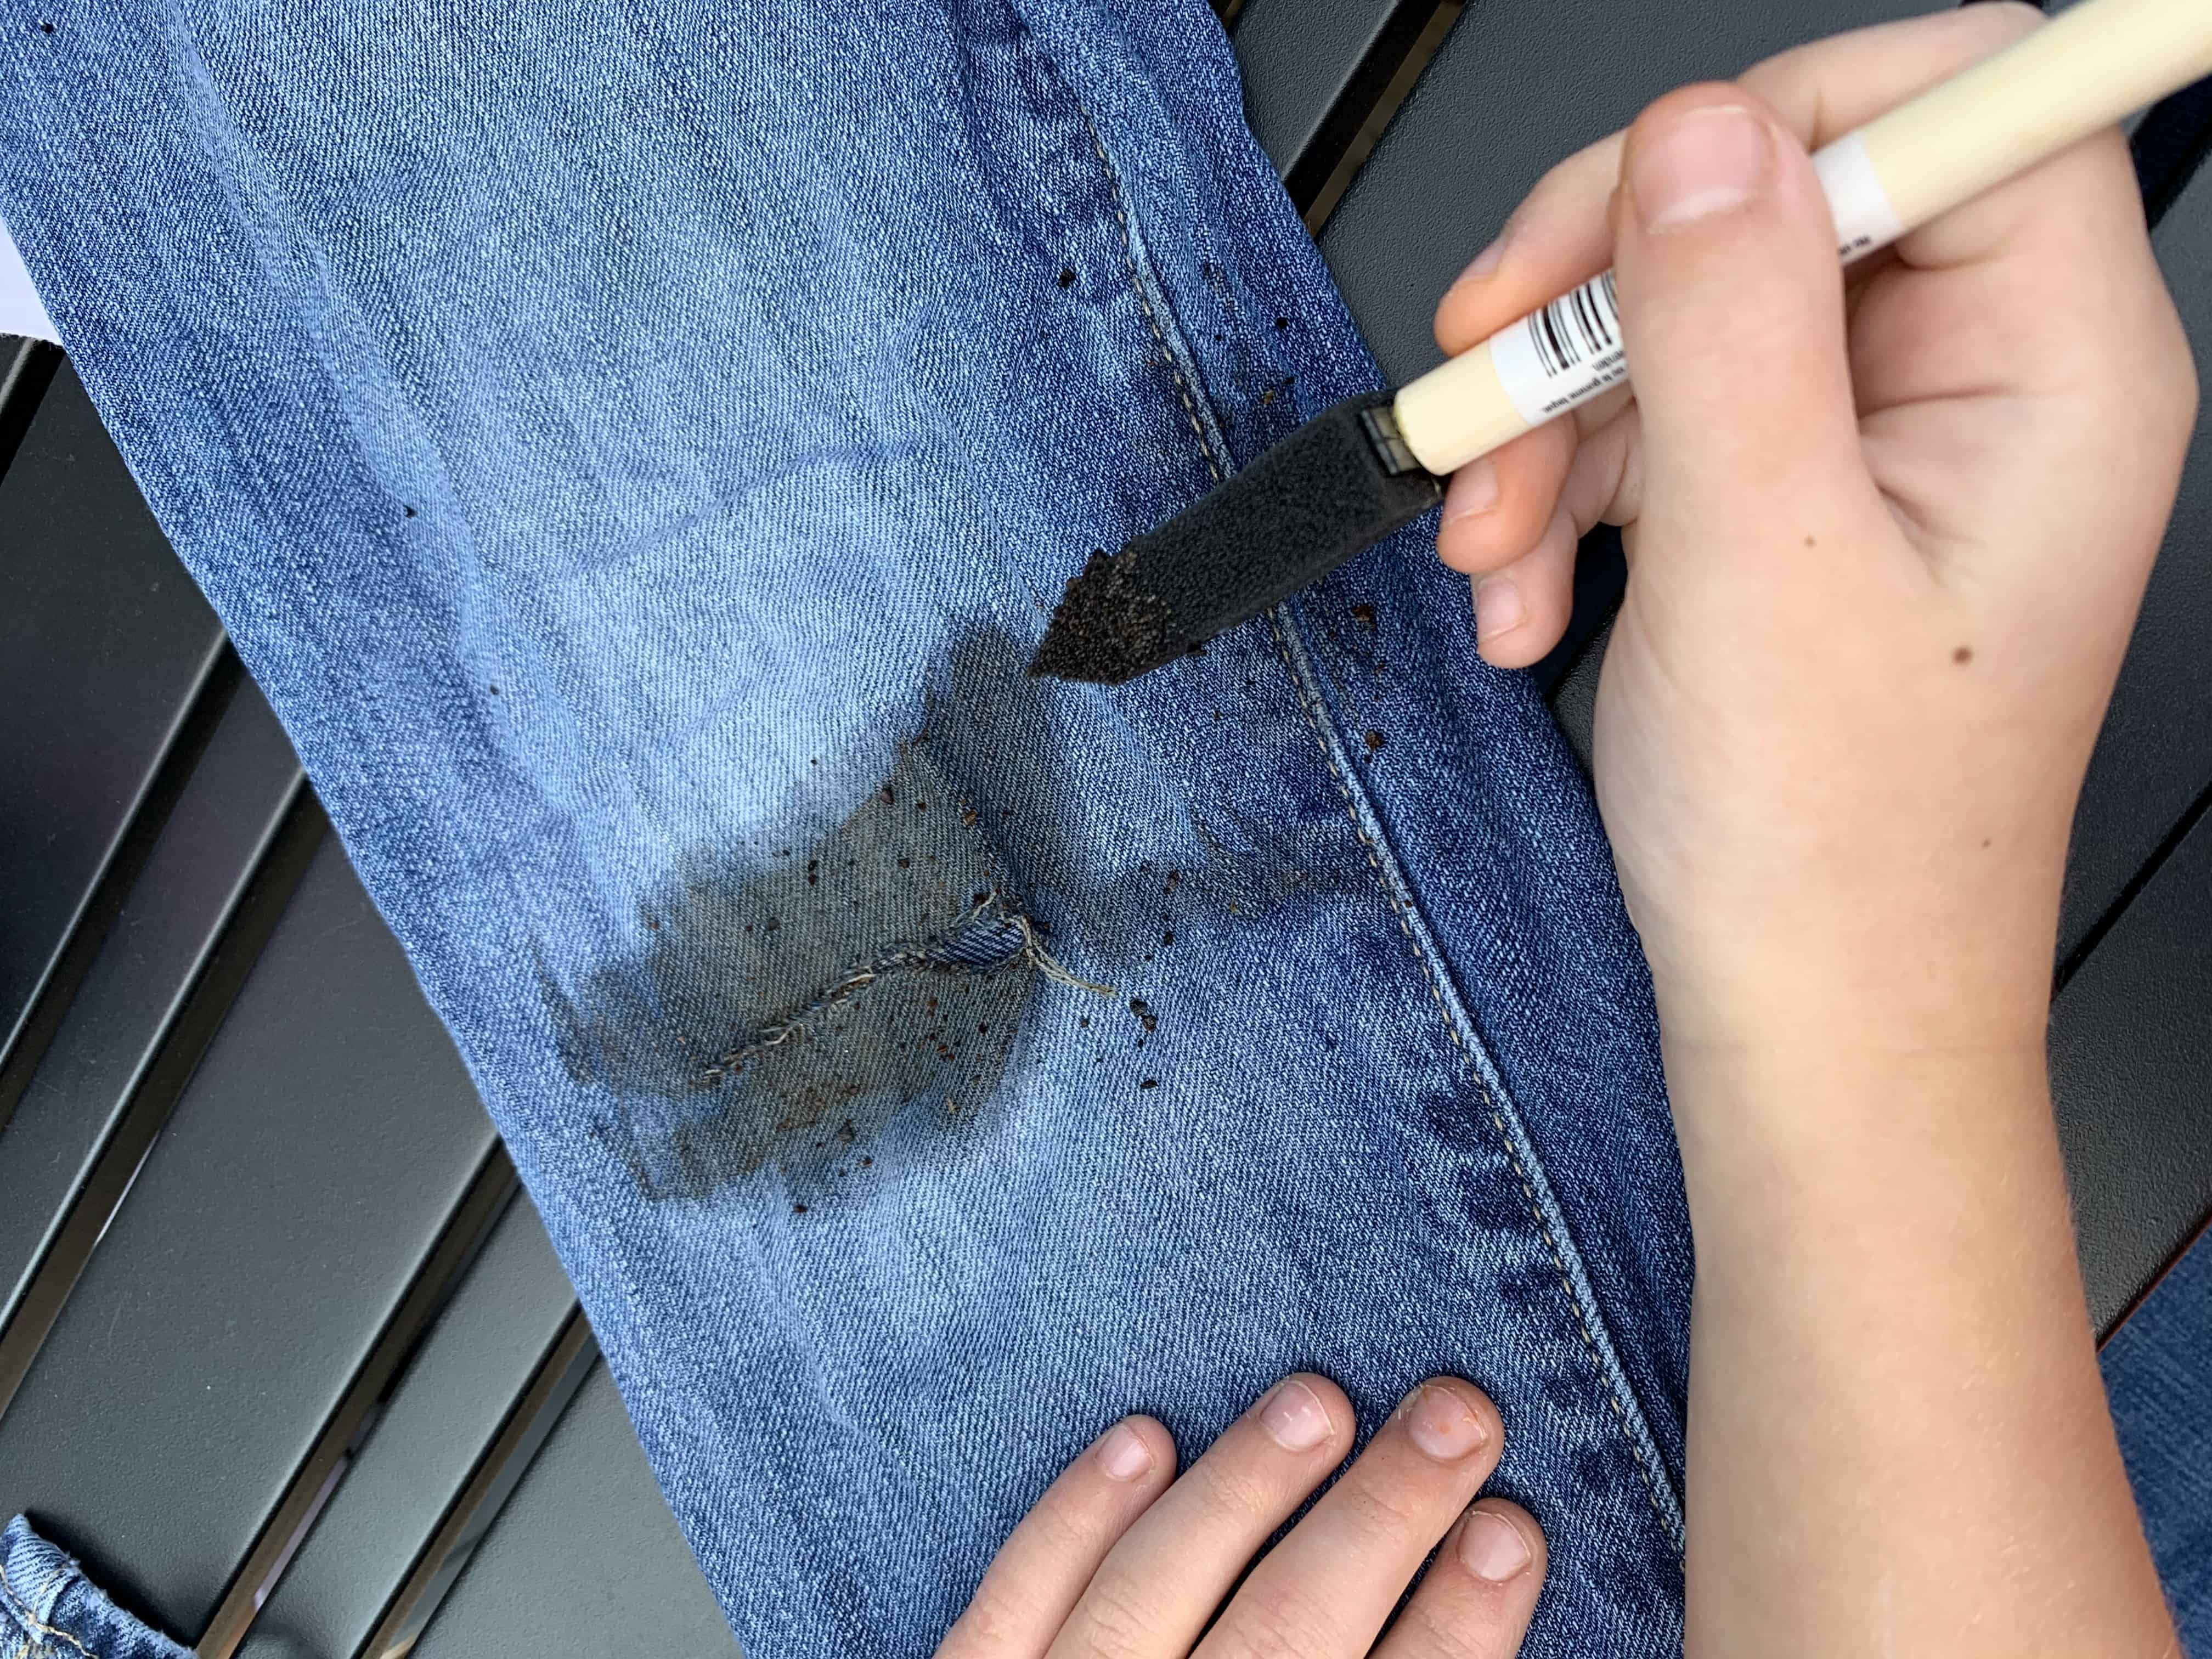 painting stain on zombie costume pants